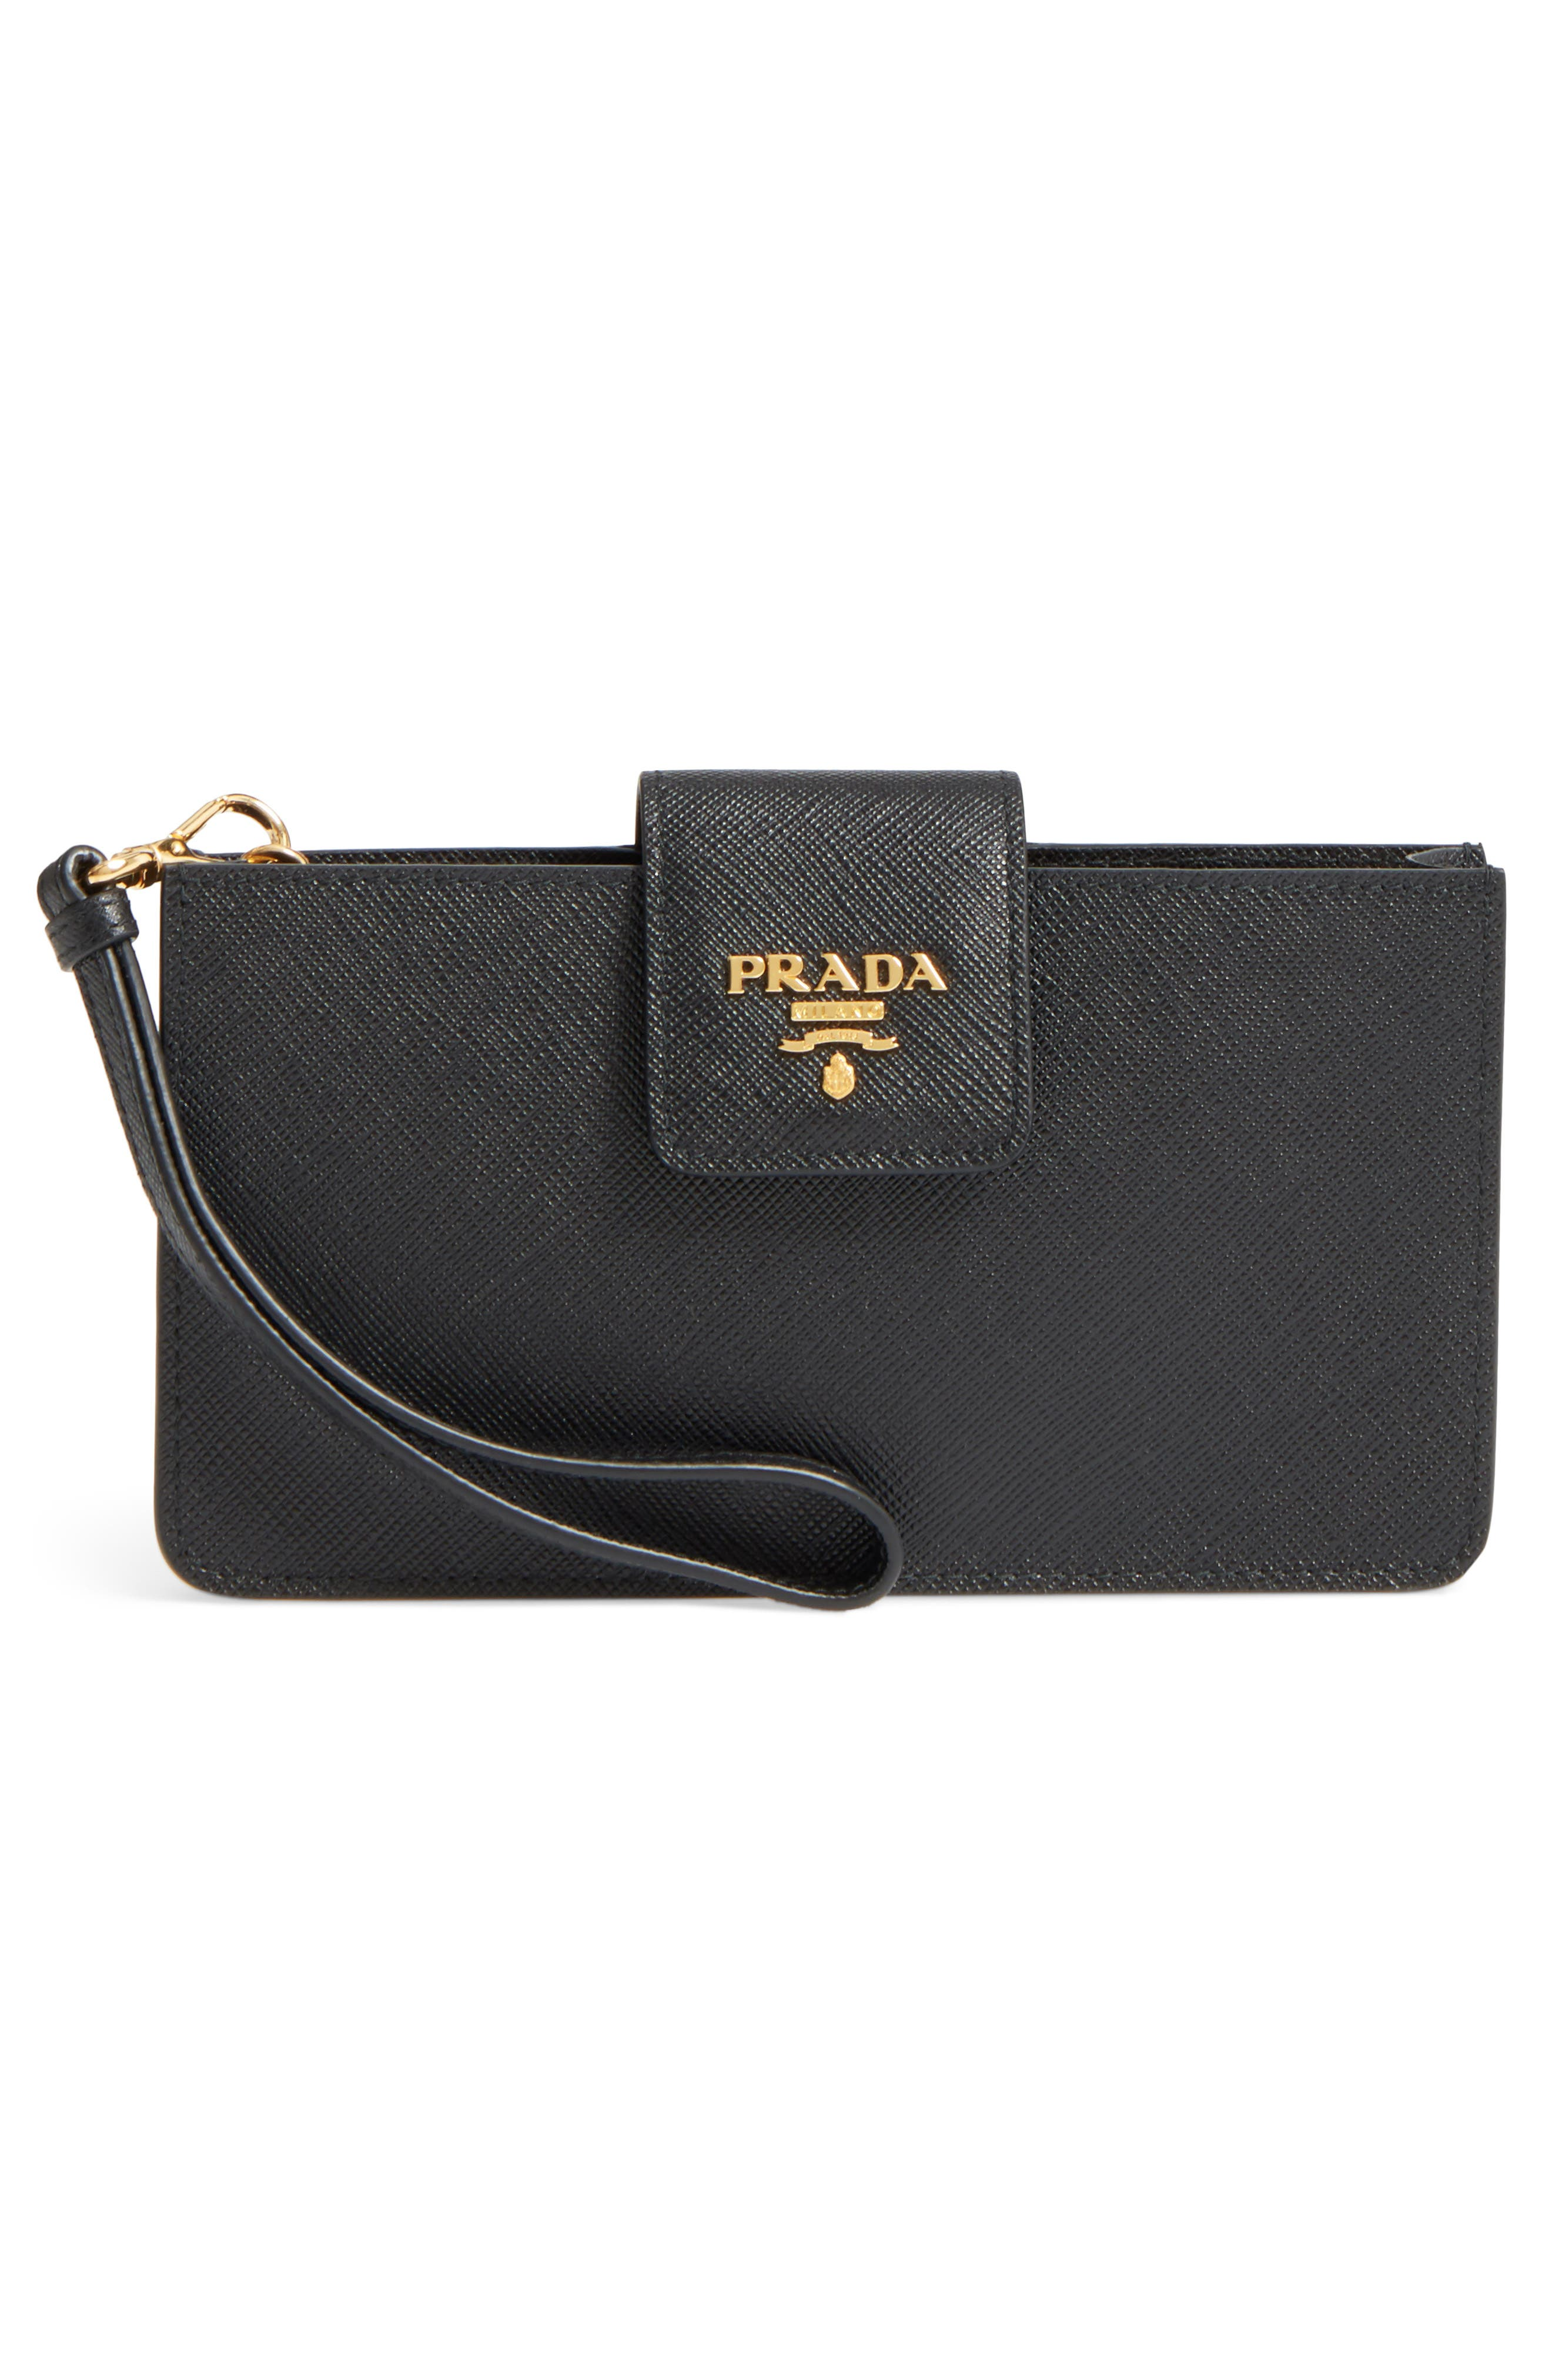 PRADA, Saffiano Leather Phone Wallet on a Chain, Alternate thumbnail 3, color, 001